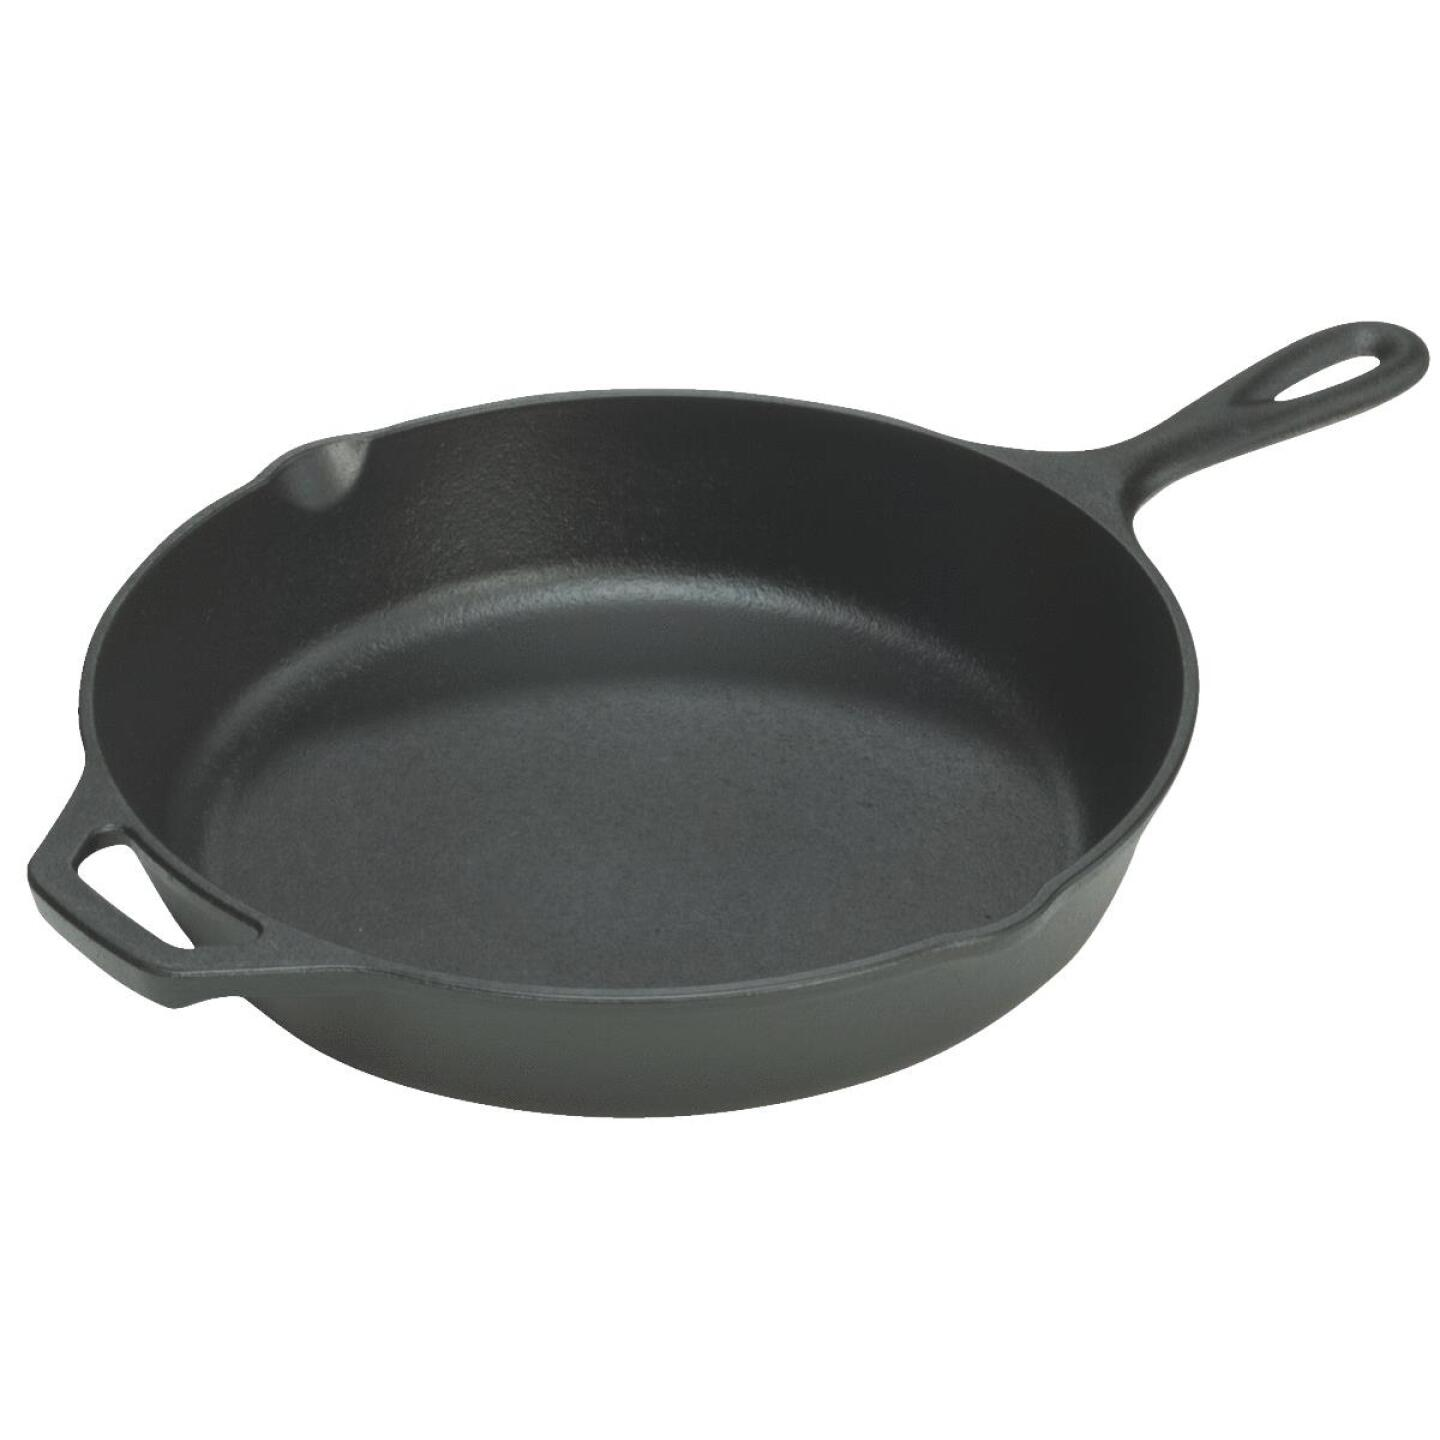 Lodge 15-1/4 In. Cast Iron Skillet with Assist Handle Image 1